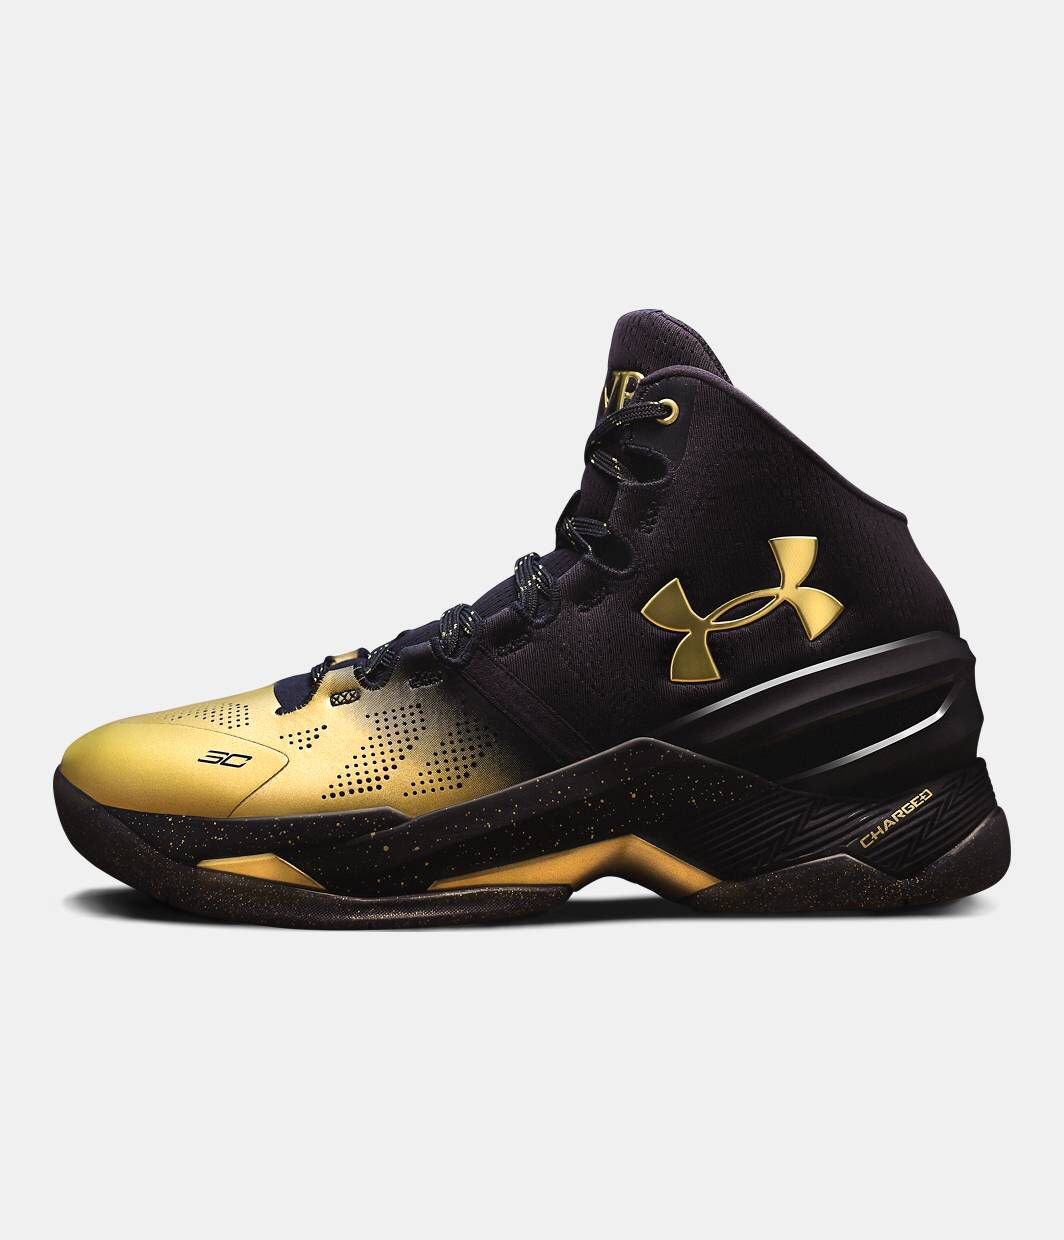 8d80716a860e Under Armour Lockdown Basketball Shoes ( 70) ❤ liked on Polyvore featuring  men s fashion